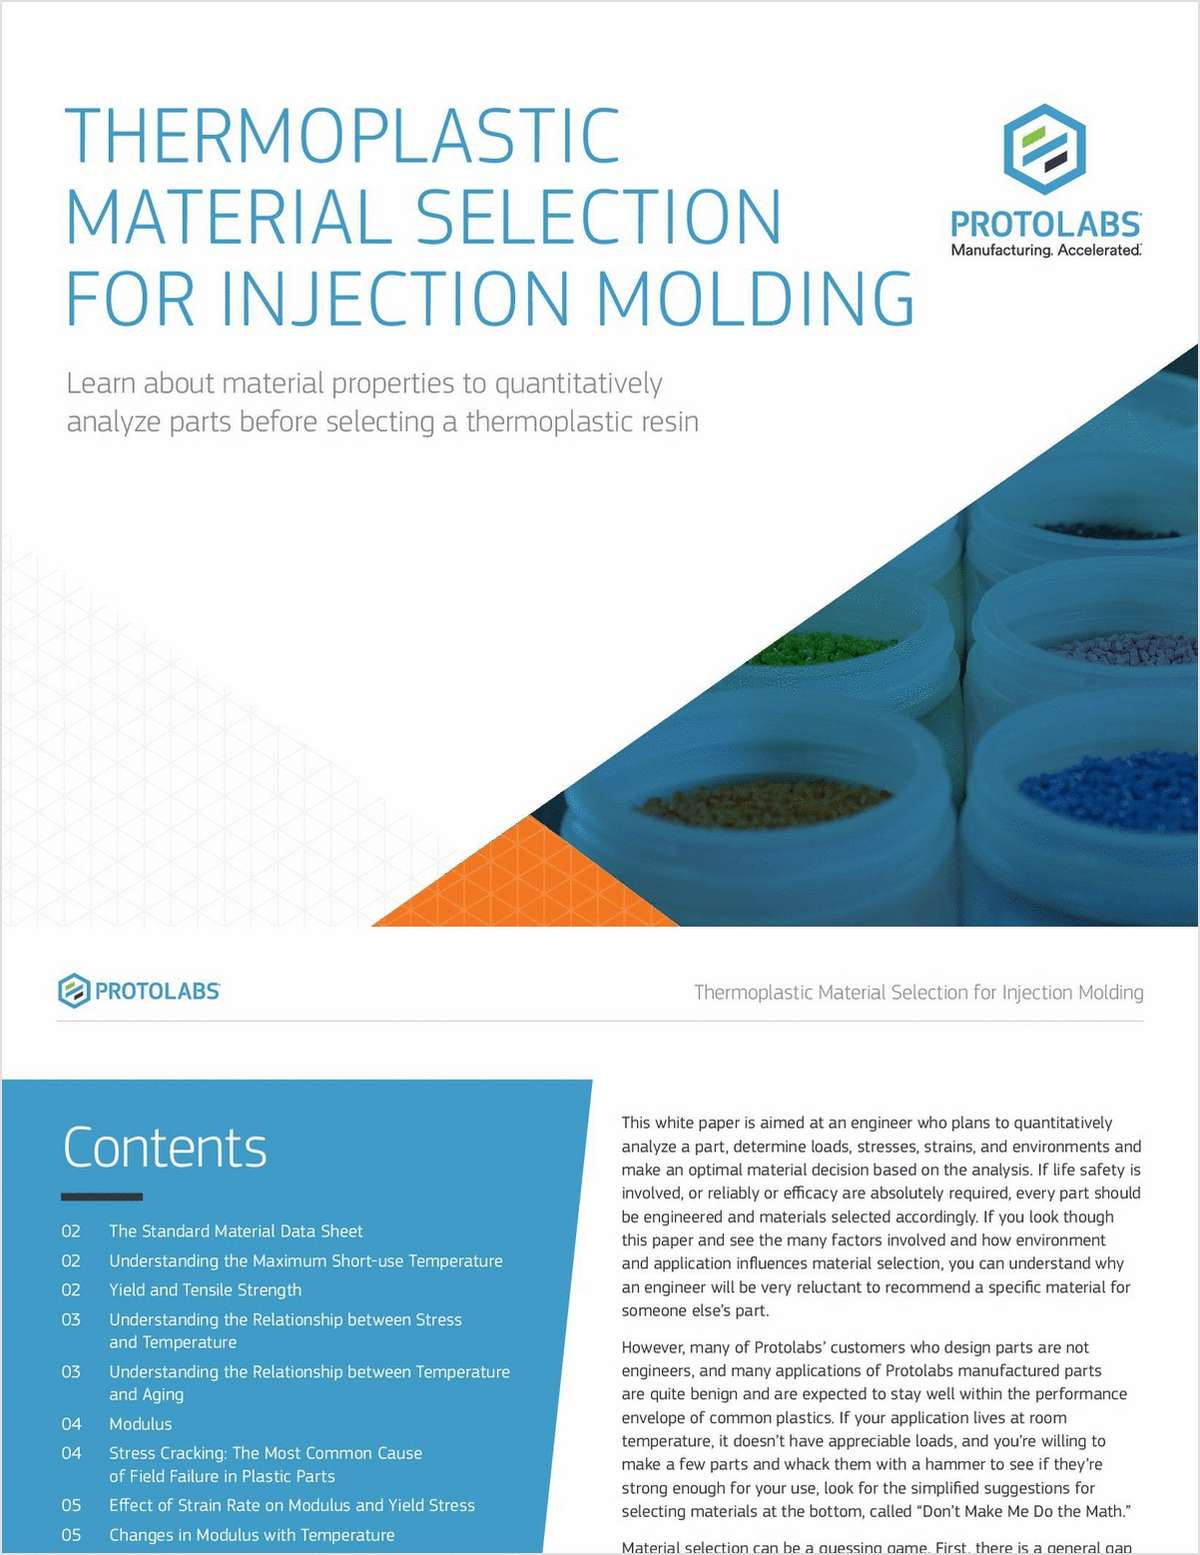 Thermoplastic Material Selection for Injection Molding